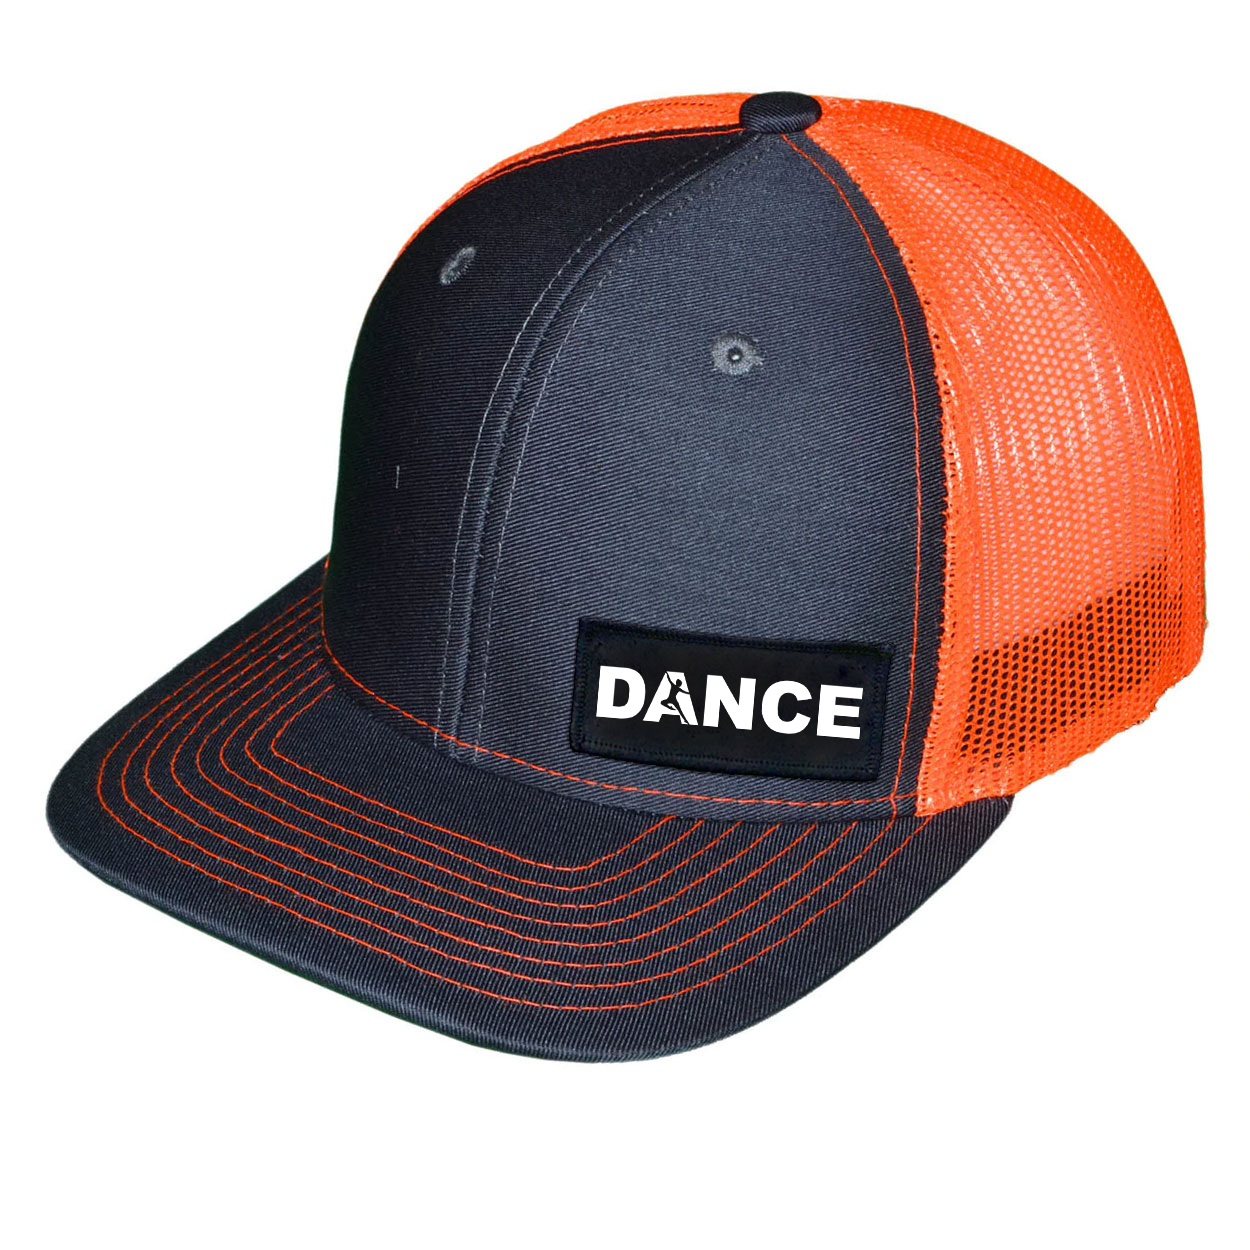 Dance Silhouette Logo Night Out Woven Patch Snapback Trucker Hat Dark Gray/Orange (White Logo)